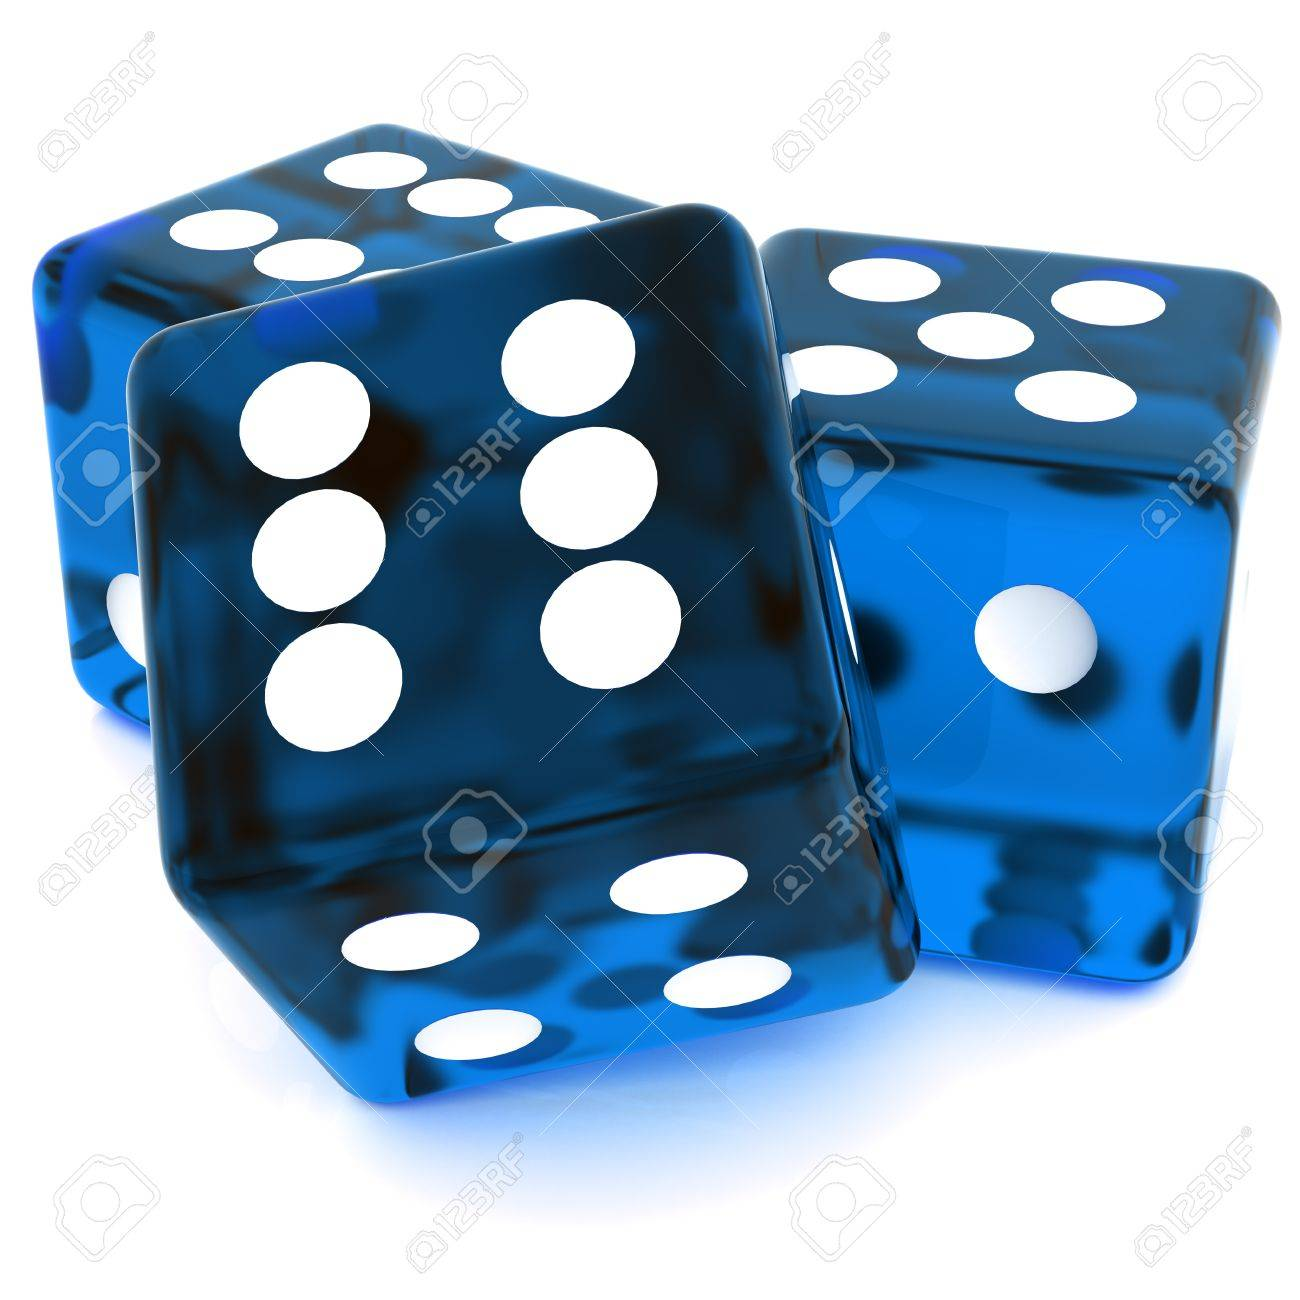 Blue casino dice internet casino netent